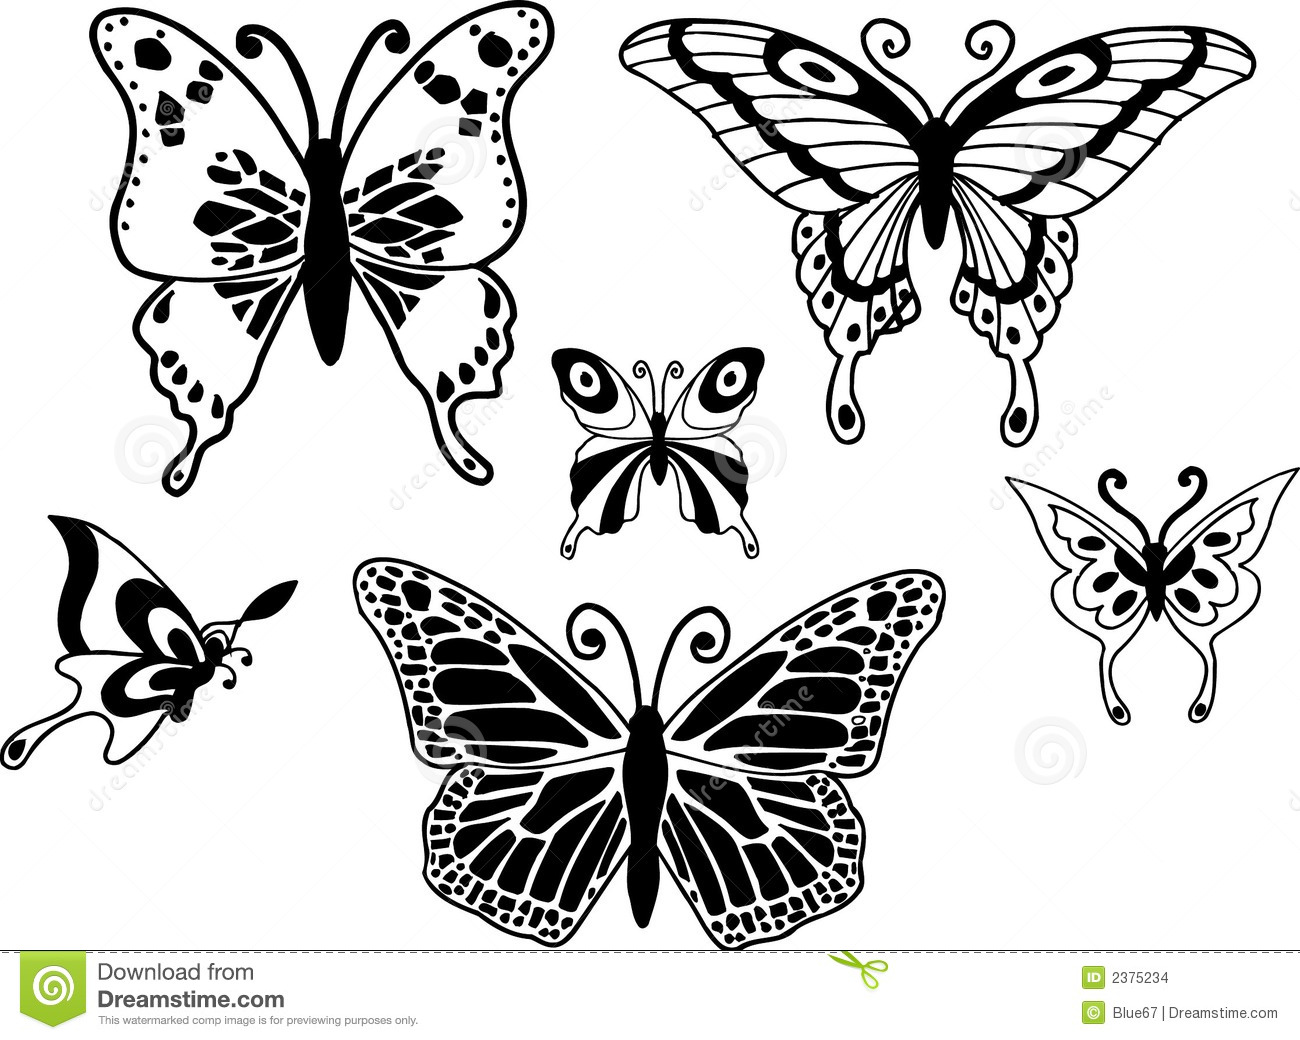 Stock Images Butterflies Illustration Image2375234 on animals shapes